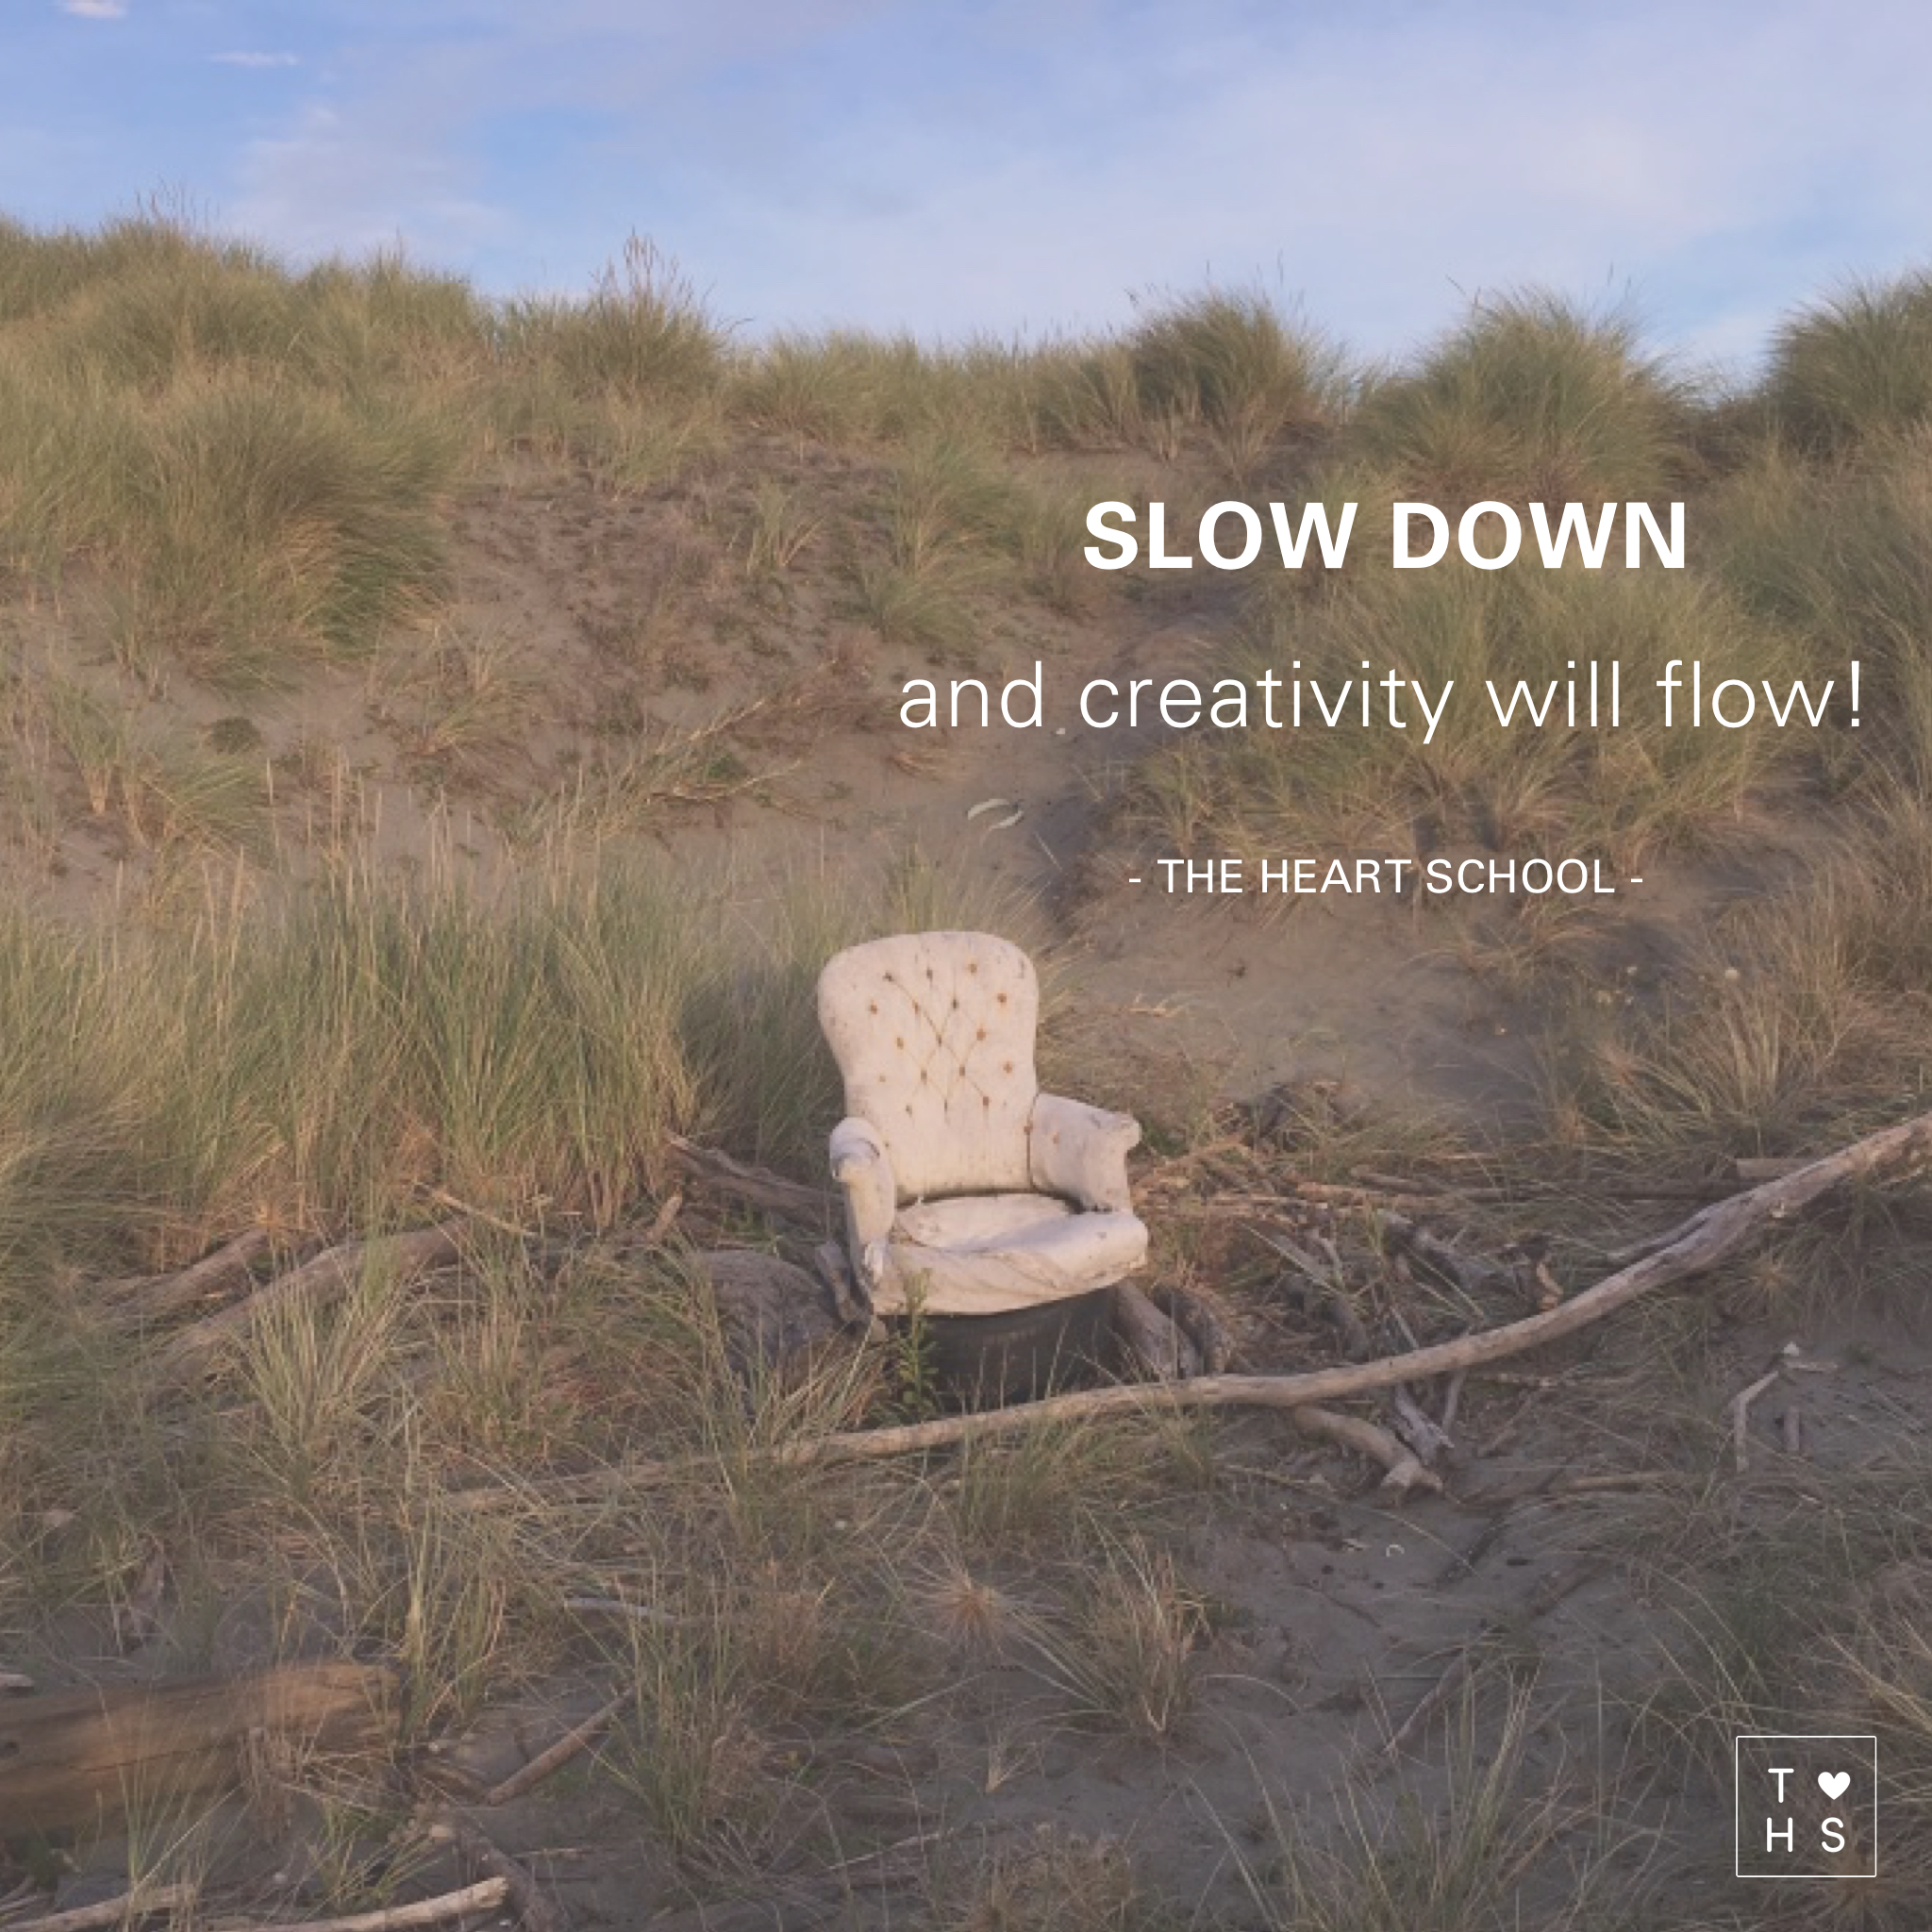 Feeling rushed? Deflated? When we are always on the go, our mind going in turbo, we tend to miss opportunities. We act more reactive, less responsive, and less intentional. Slowing down creates more space in your life to be more creative. Say No today to multi-tasking, say Yes today to presence and creativity will follow!